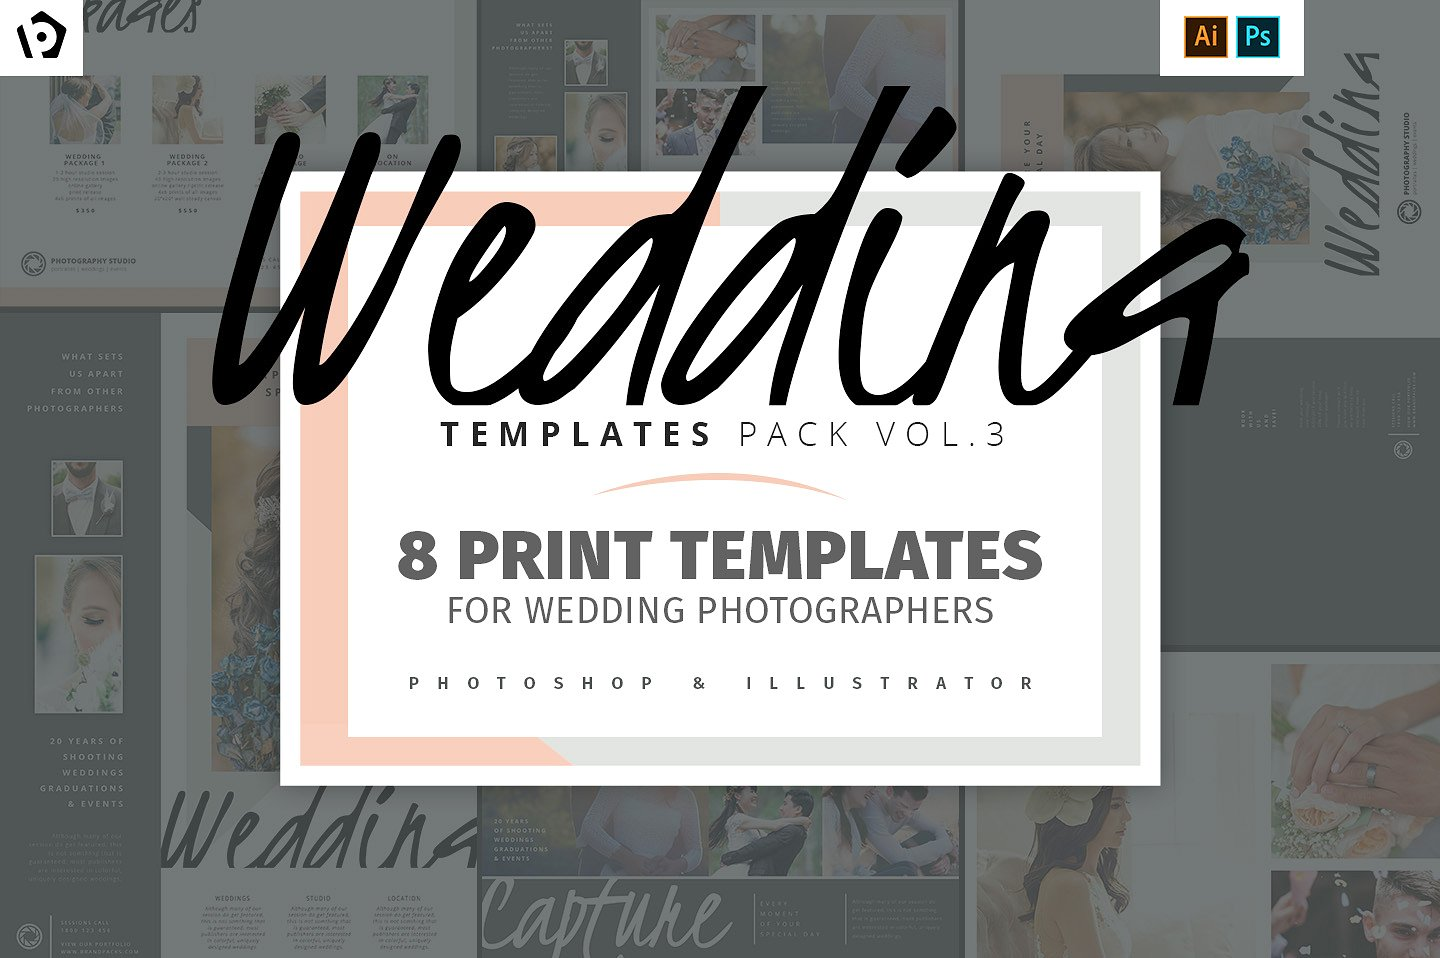 Pography Templates | 21 Photography Magazine Templates To Promote Your Business Filtergrade